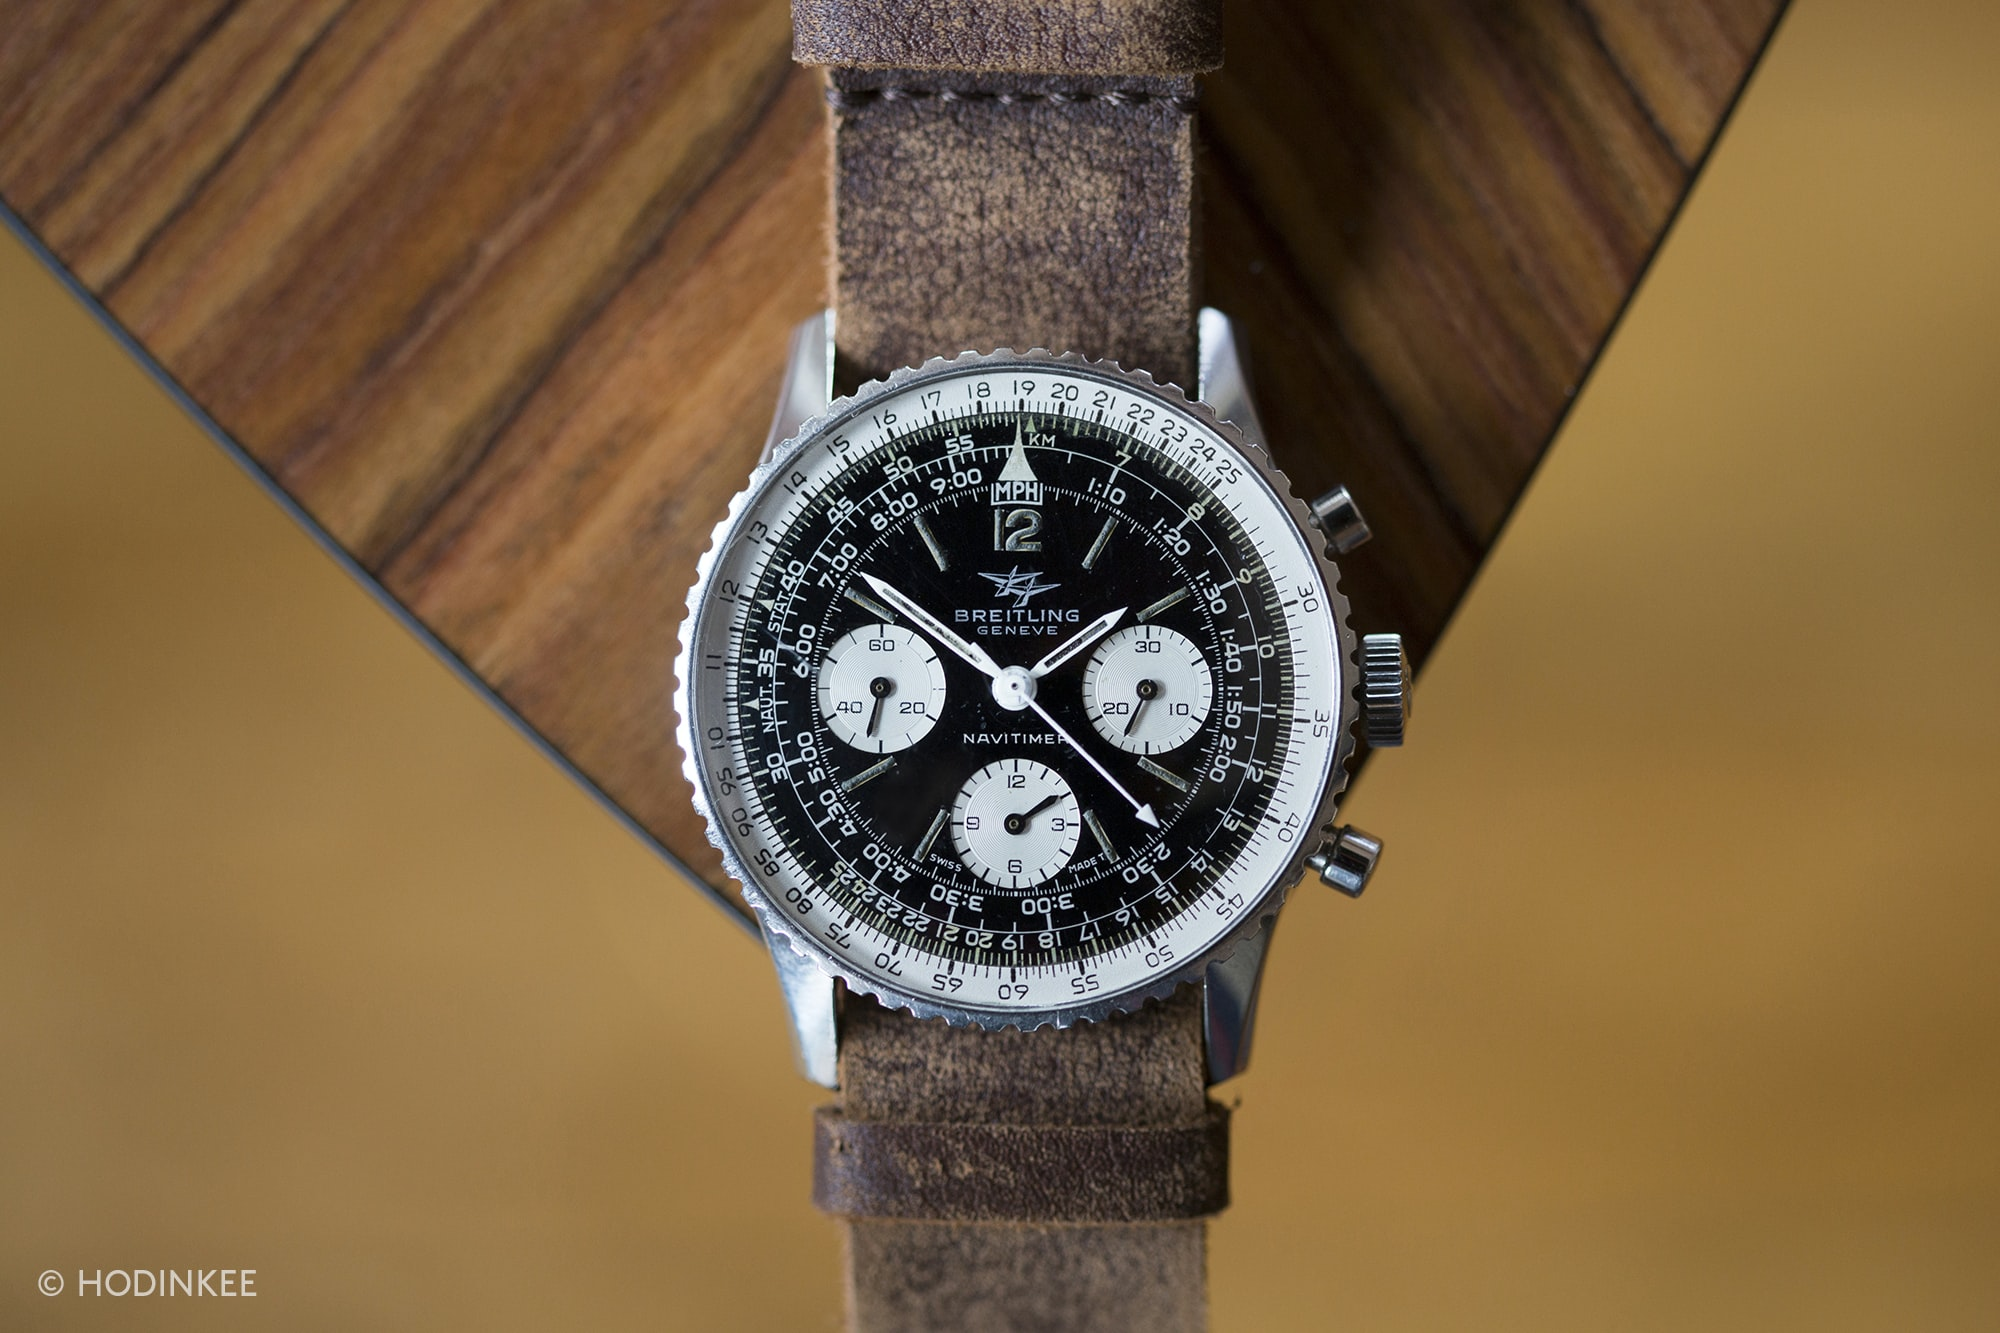 Breitling Navitimer 806 The Eight Watch Anniversaries You Need To Know In 2017 The Eight Watch Anniversaries You Need To Know In 2017 588A0070 copy 2